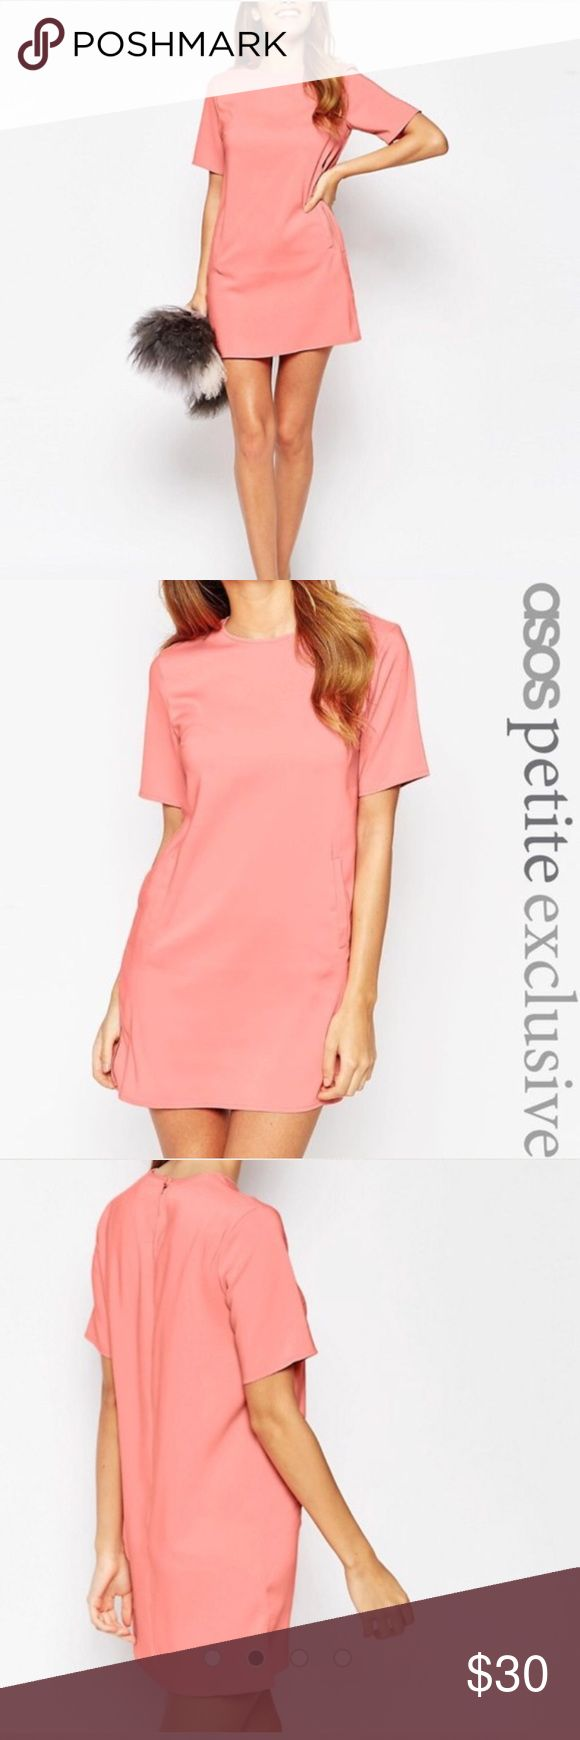 ASOS Petite 2P Peach Mini Shift Dress NWT Beautifully smooth ASOS Petite Shift Dress in Peach. Pockets! (Just decorative not opened). NWT. No signs of wear. Only Flaw: tear in fabric near brand TAG. 96% Polyester 2% Elastane Lining is 100% Polyester. ASOS Petite Dresses Mini